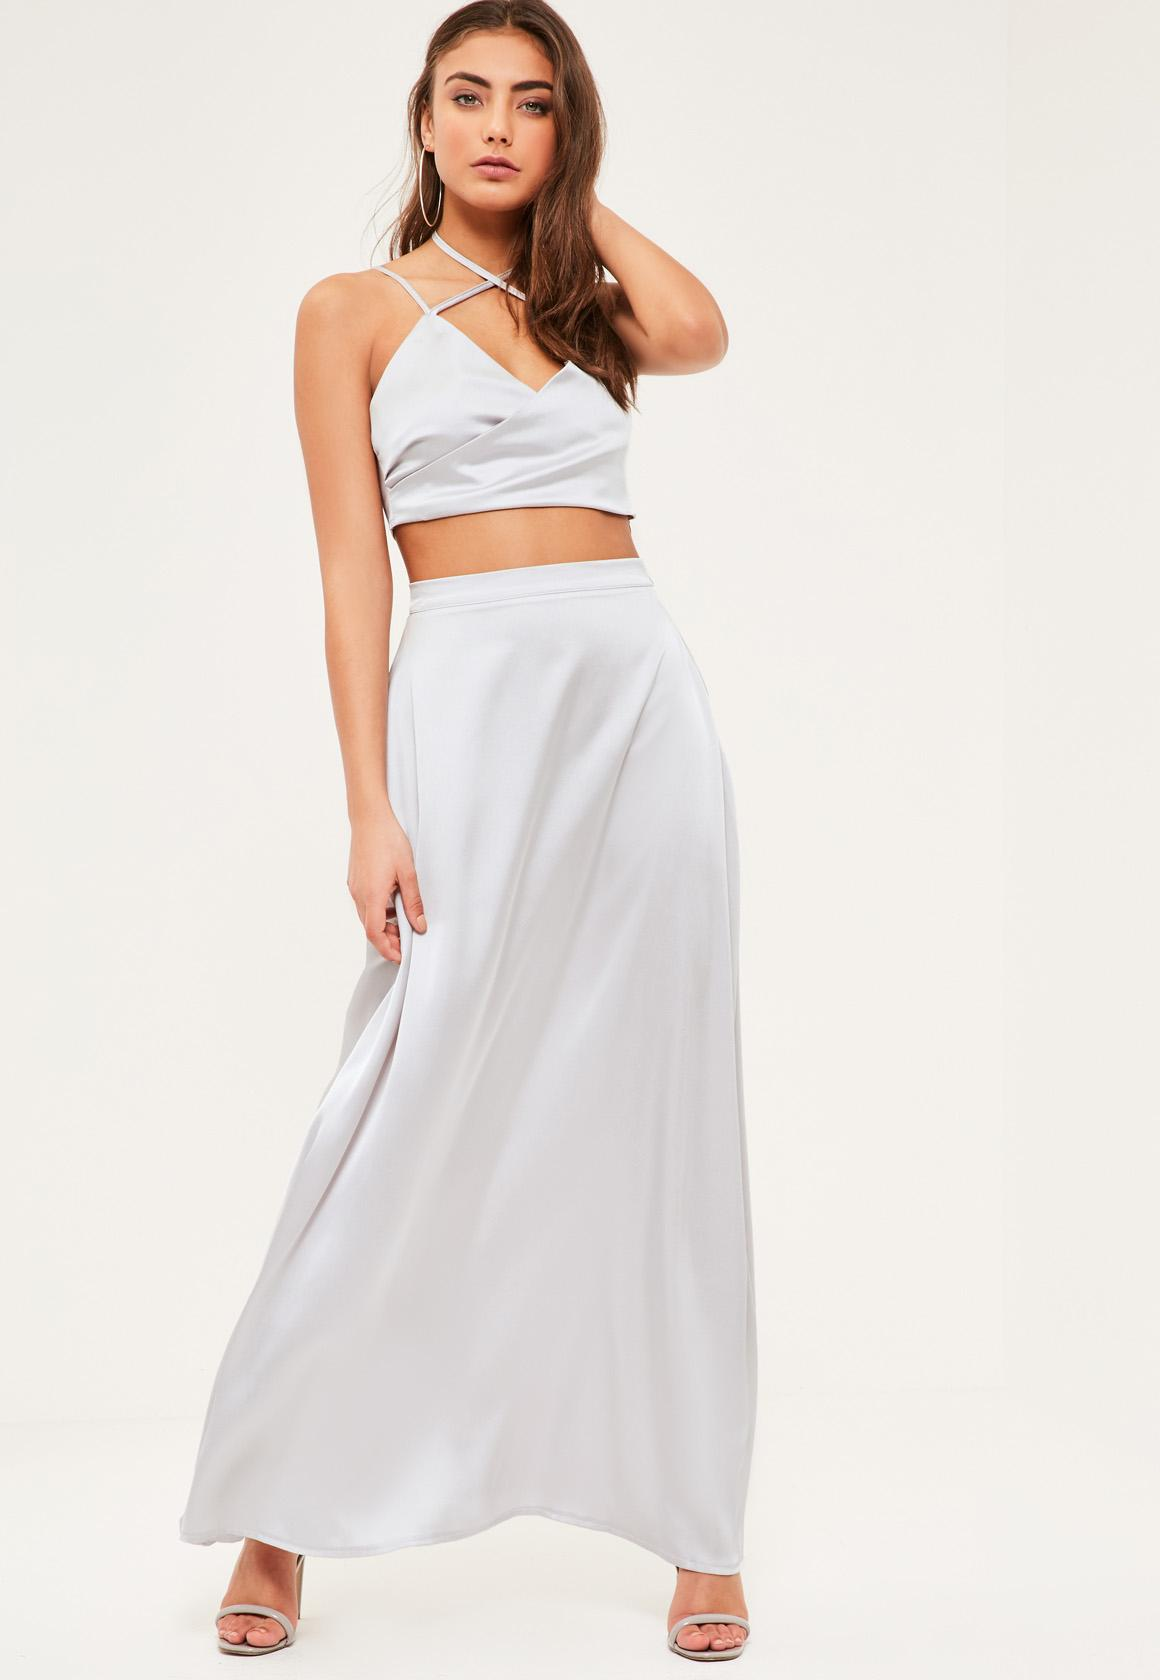 Petite Exclusive Grey Satin Maxi Skirt - Missguided